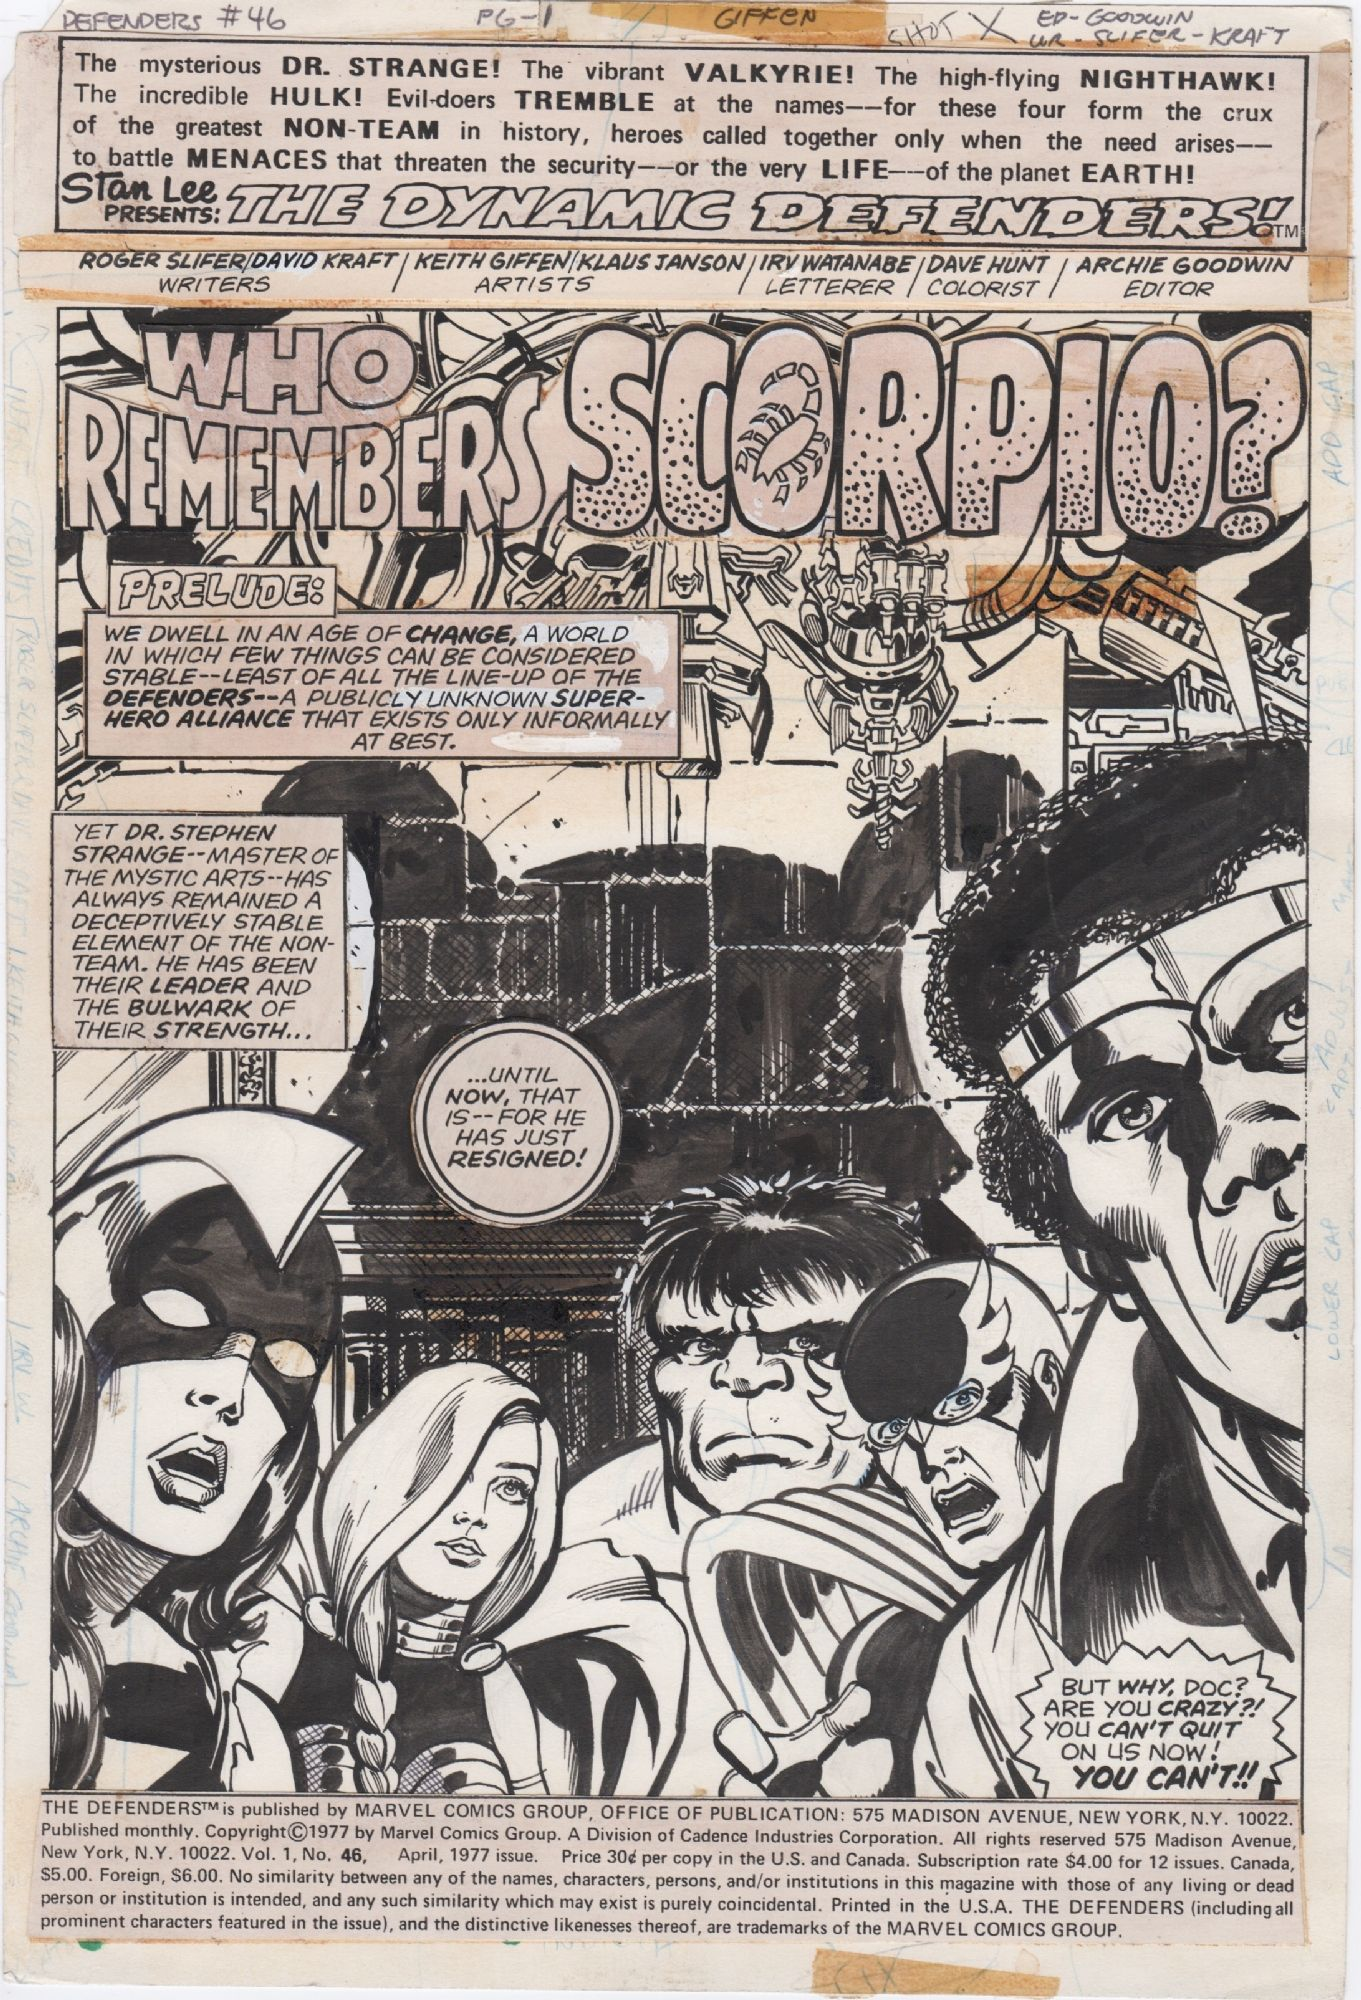 Defenders 46 Page 1 1977 Nightwing